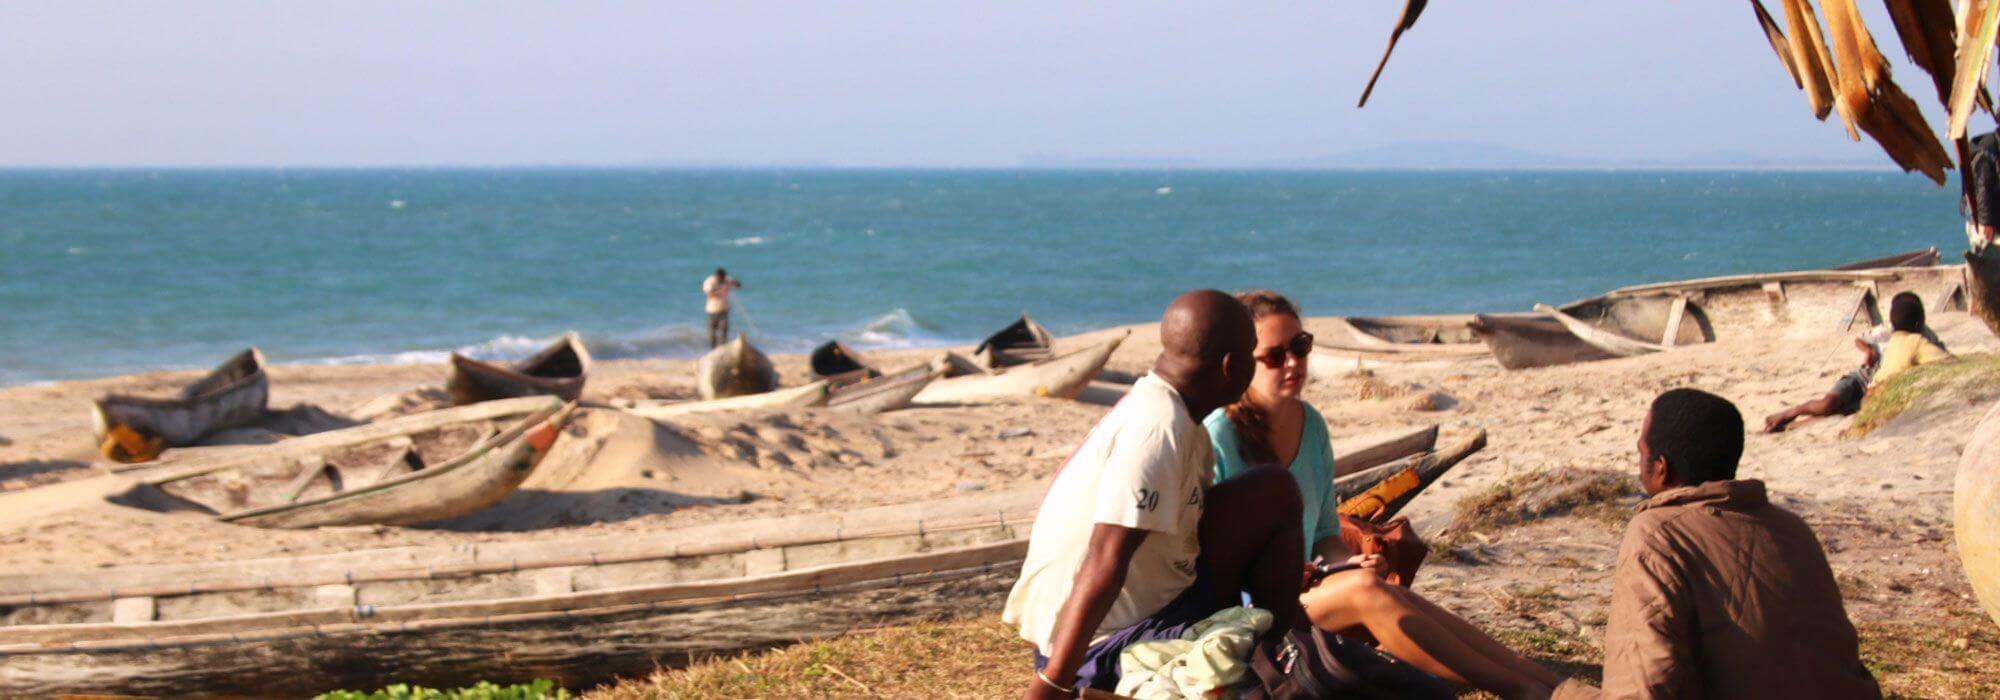 MPAG interview on the beach at Sainte Luce, Madagascar